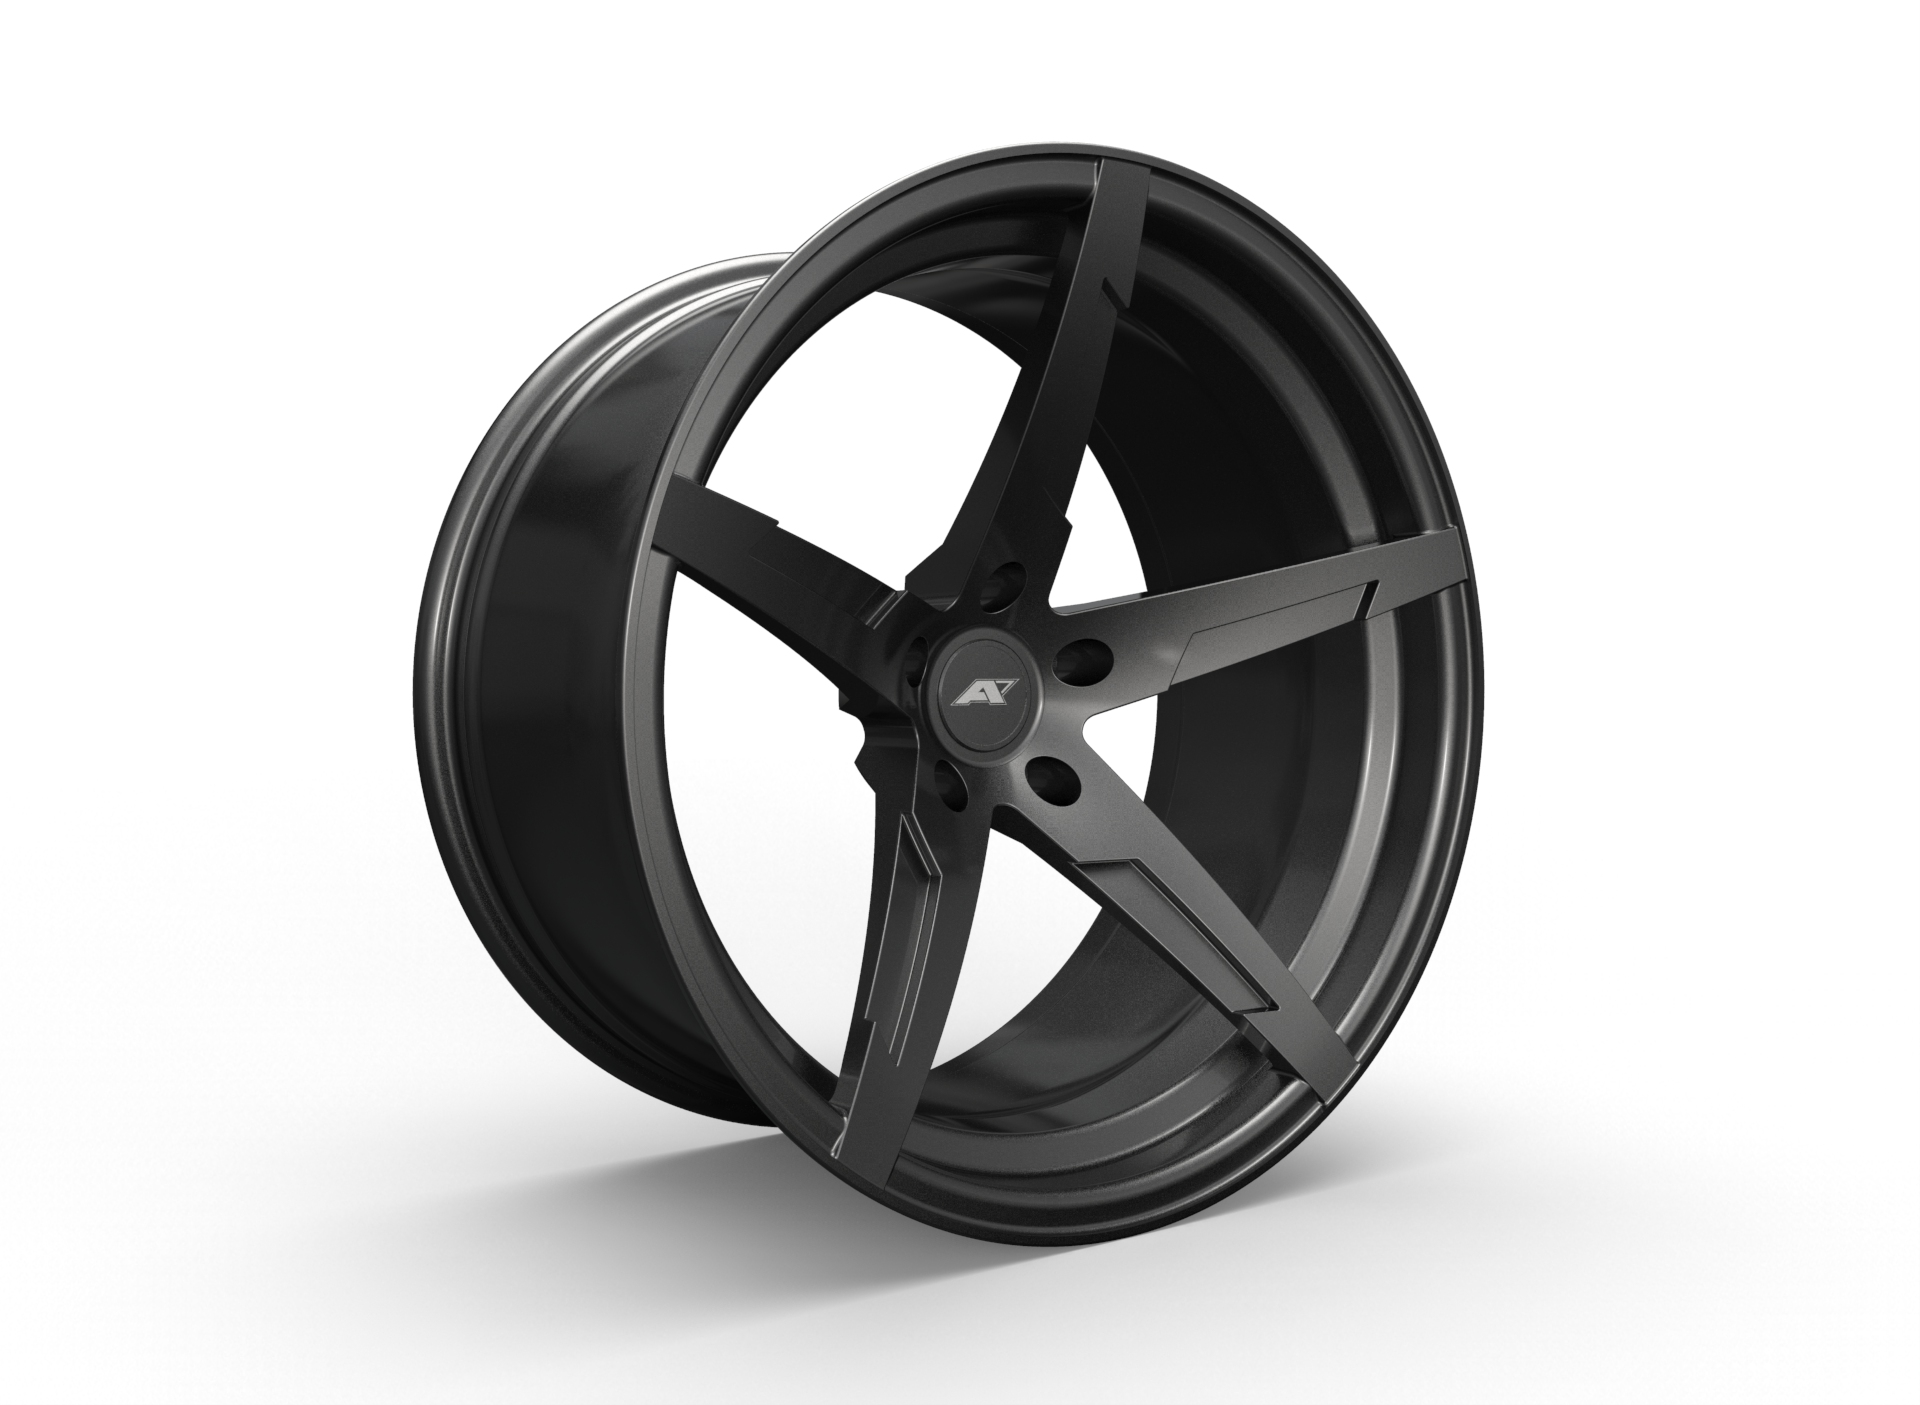 alphamale_wheels_4.81.jpg